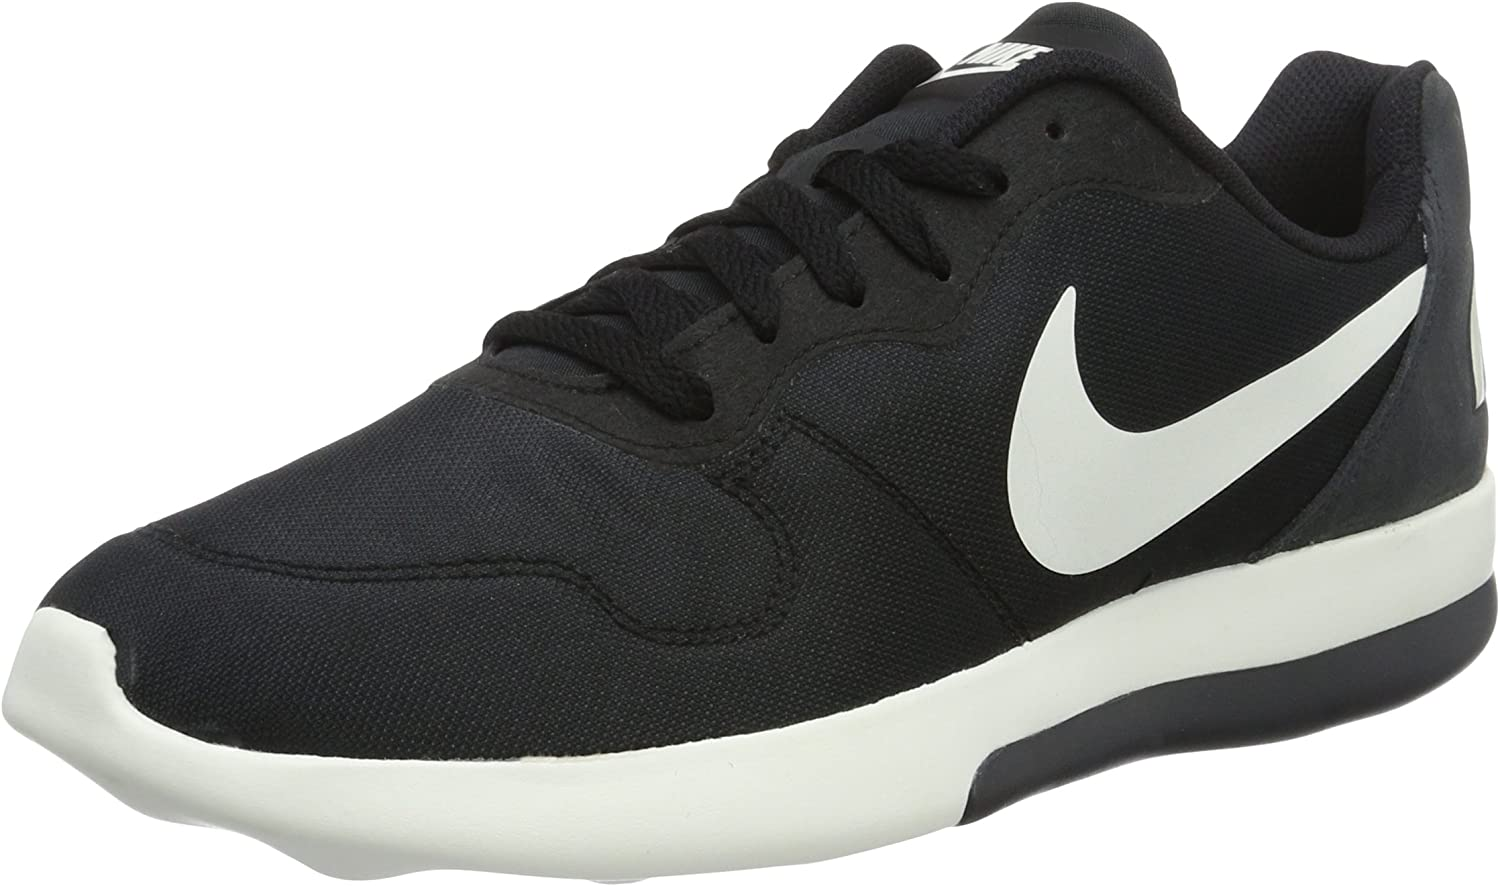 Nike Men's's Md Runner 2 Lw Trainers